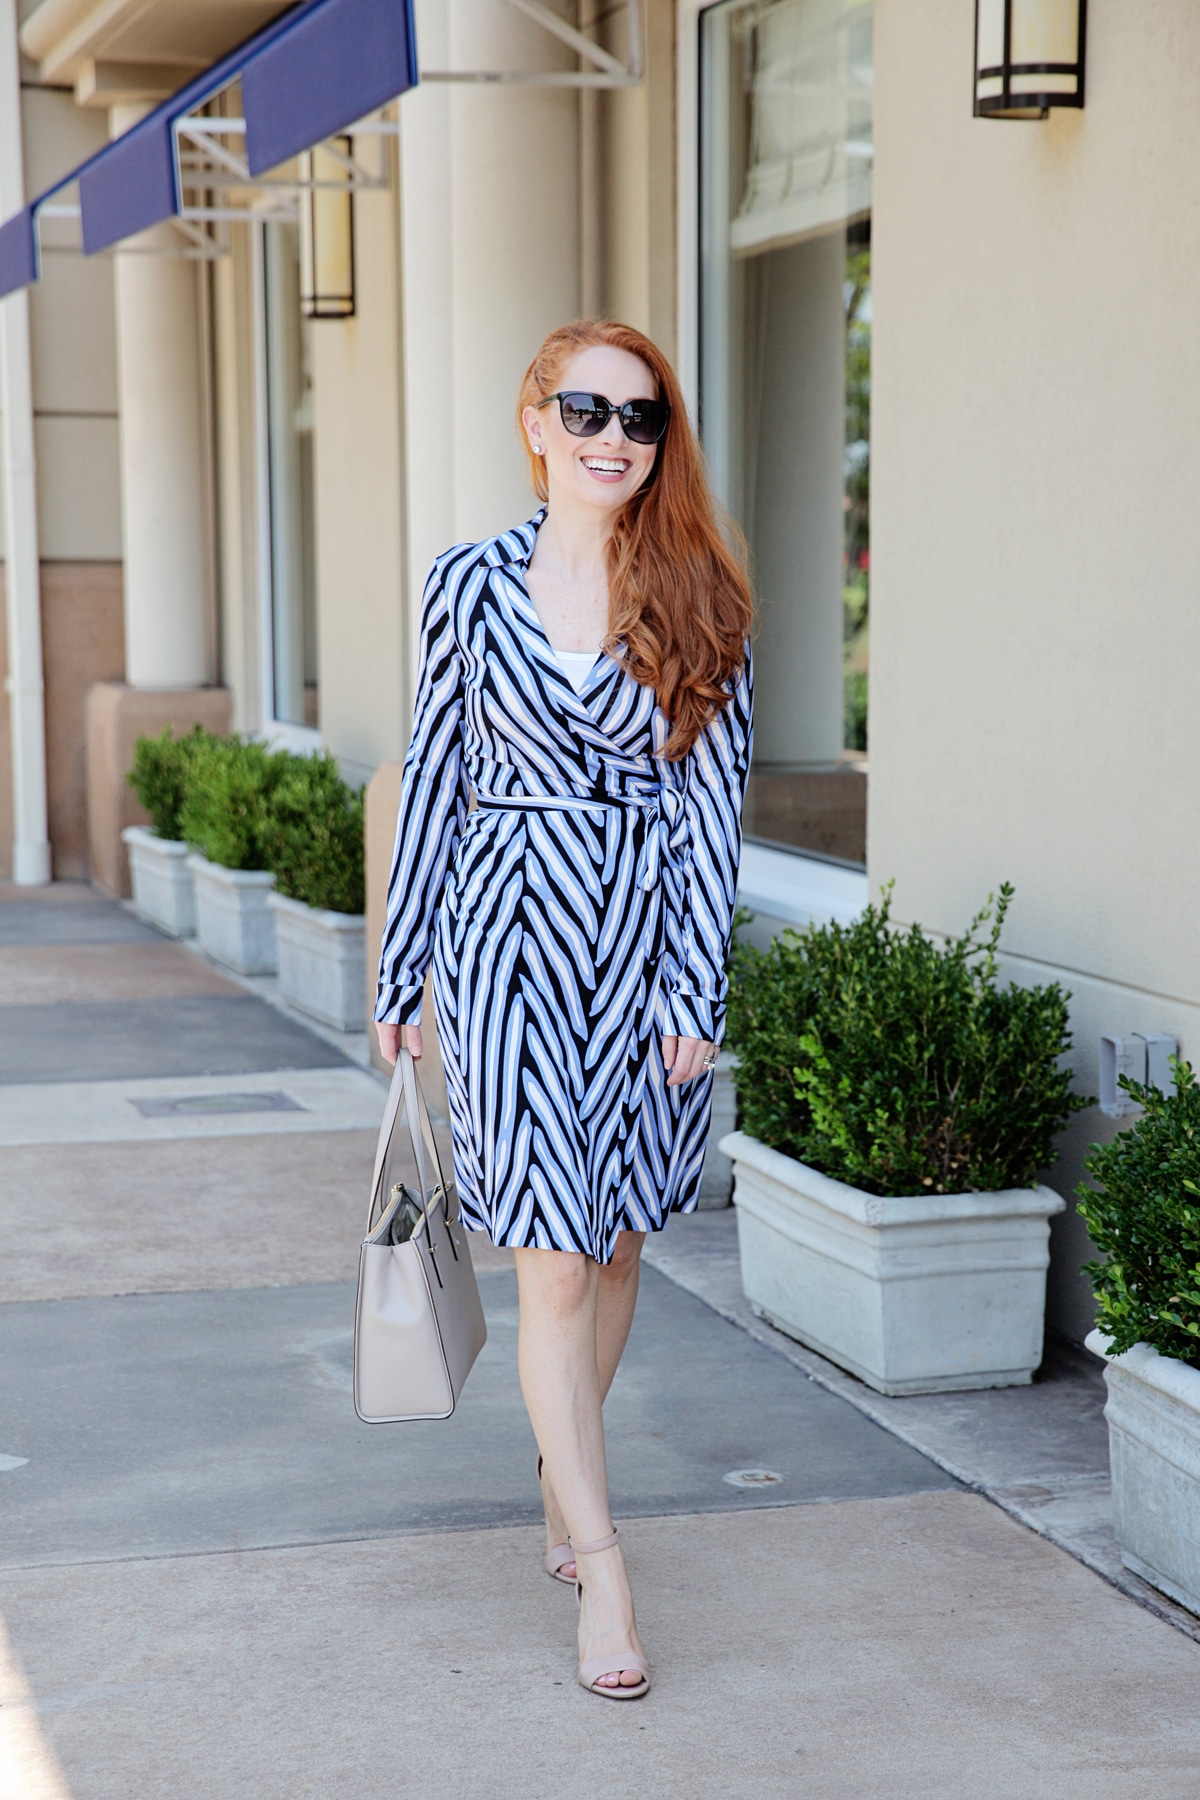 0d27a8728486a Outfit: DVF Wrap Dress - Style Assisted